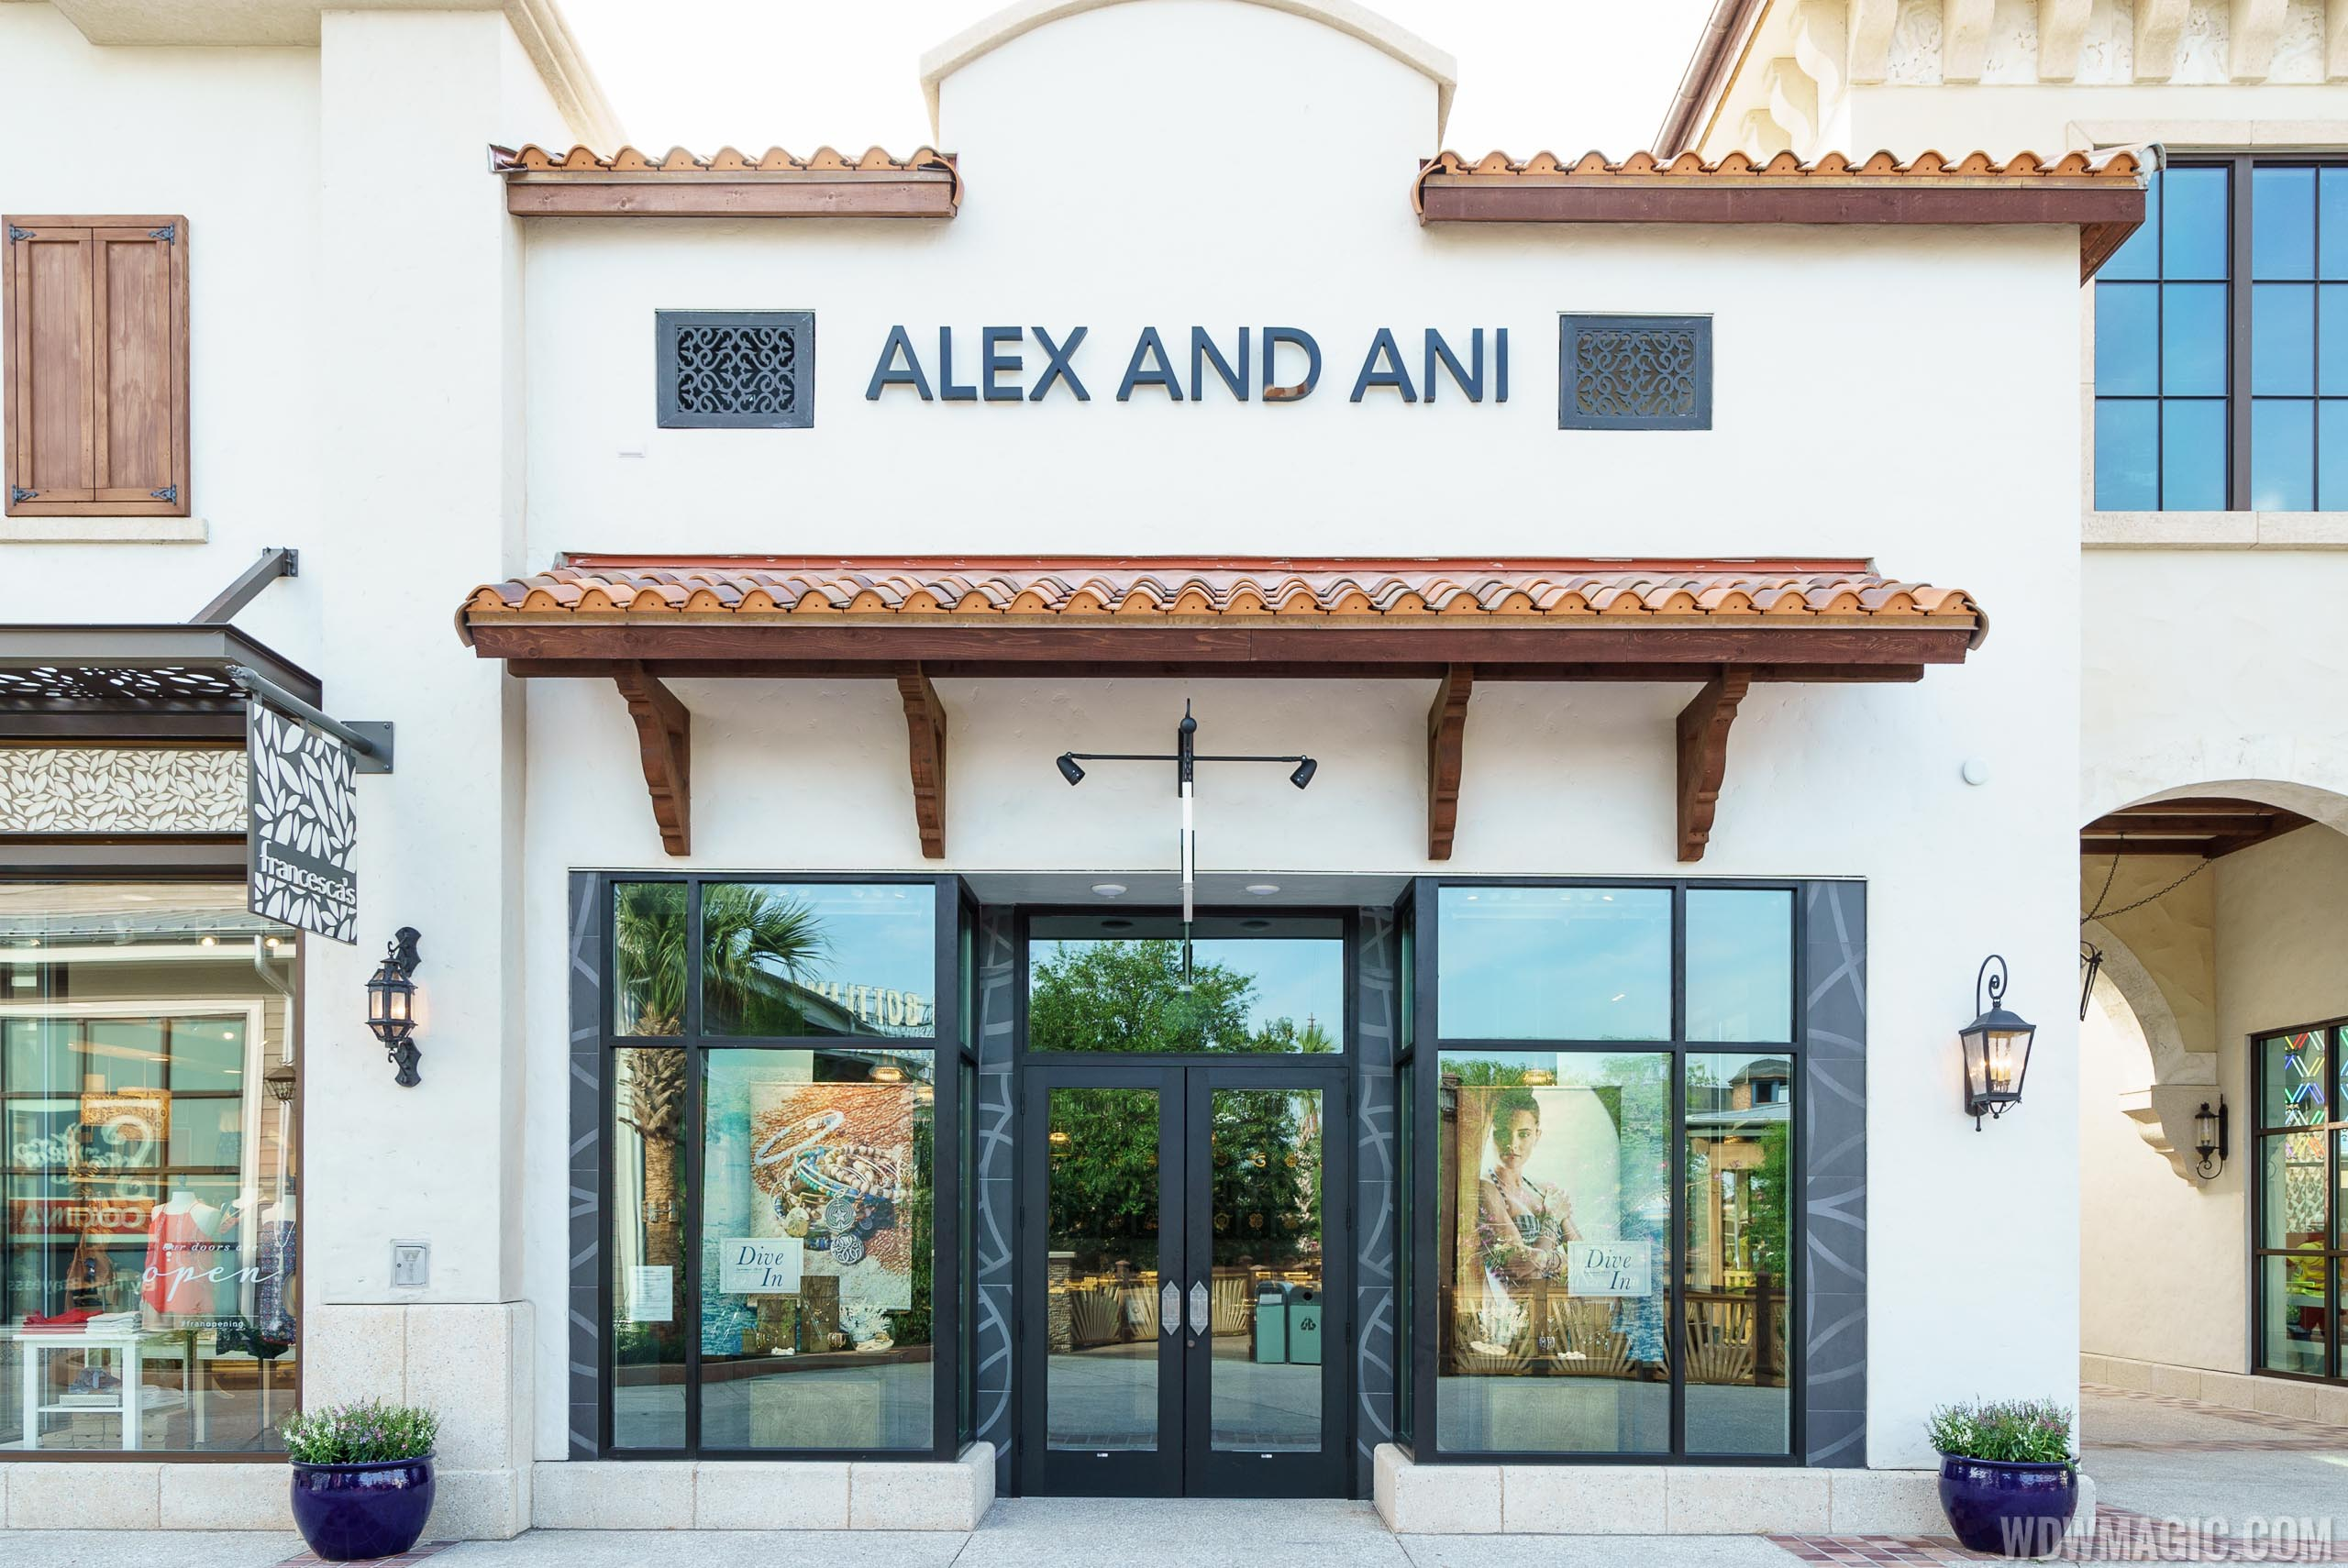 ALEX AND ANI overview